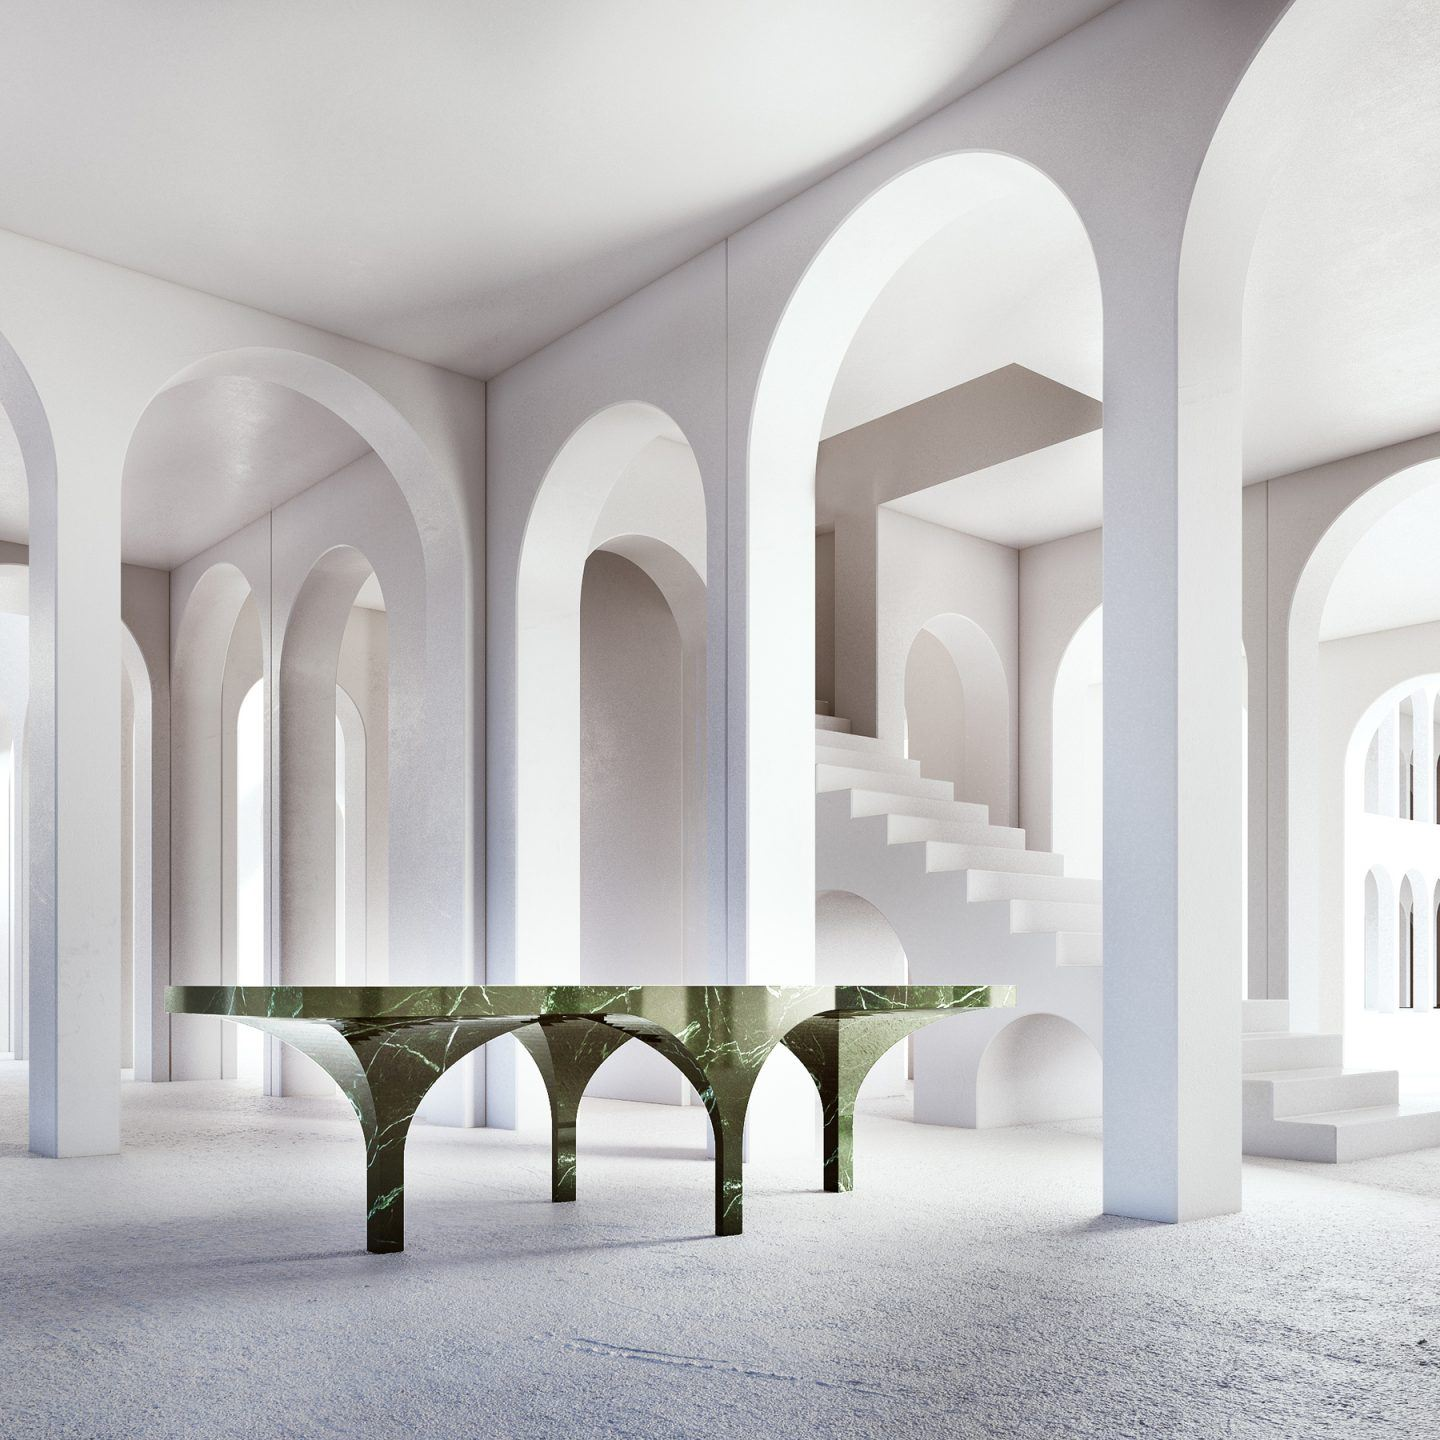 IGNANT-Design-ADesign-Award-Competition-AC-Architecture-Doo-Architecture-Heritage-Collection-1